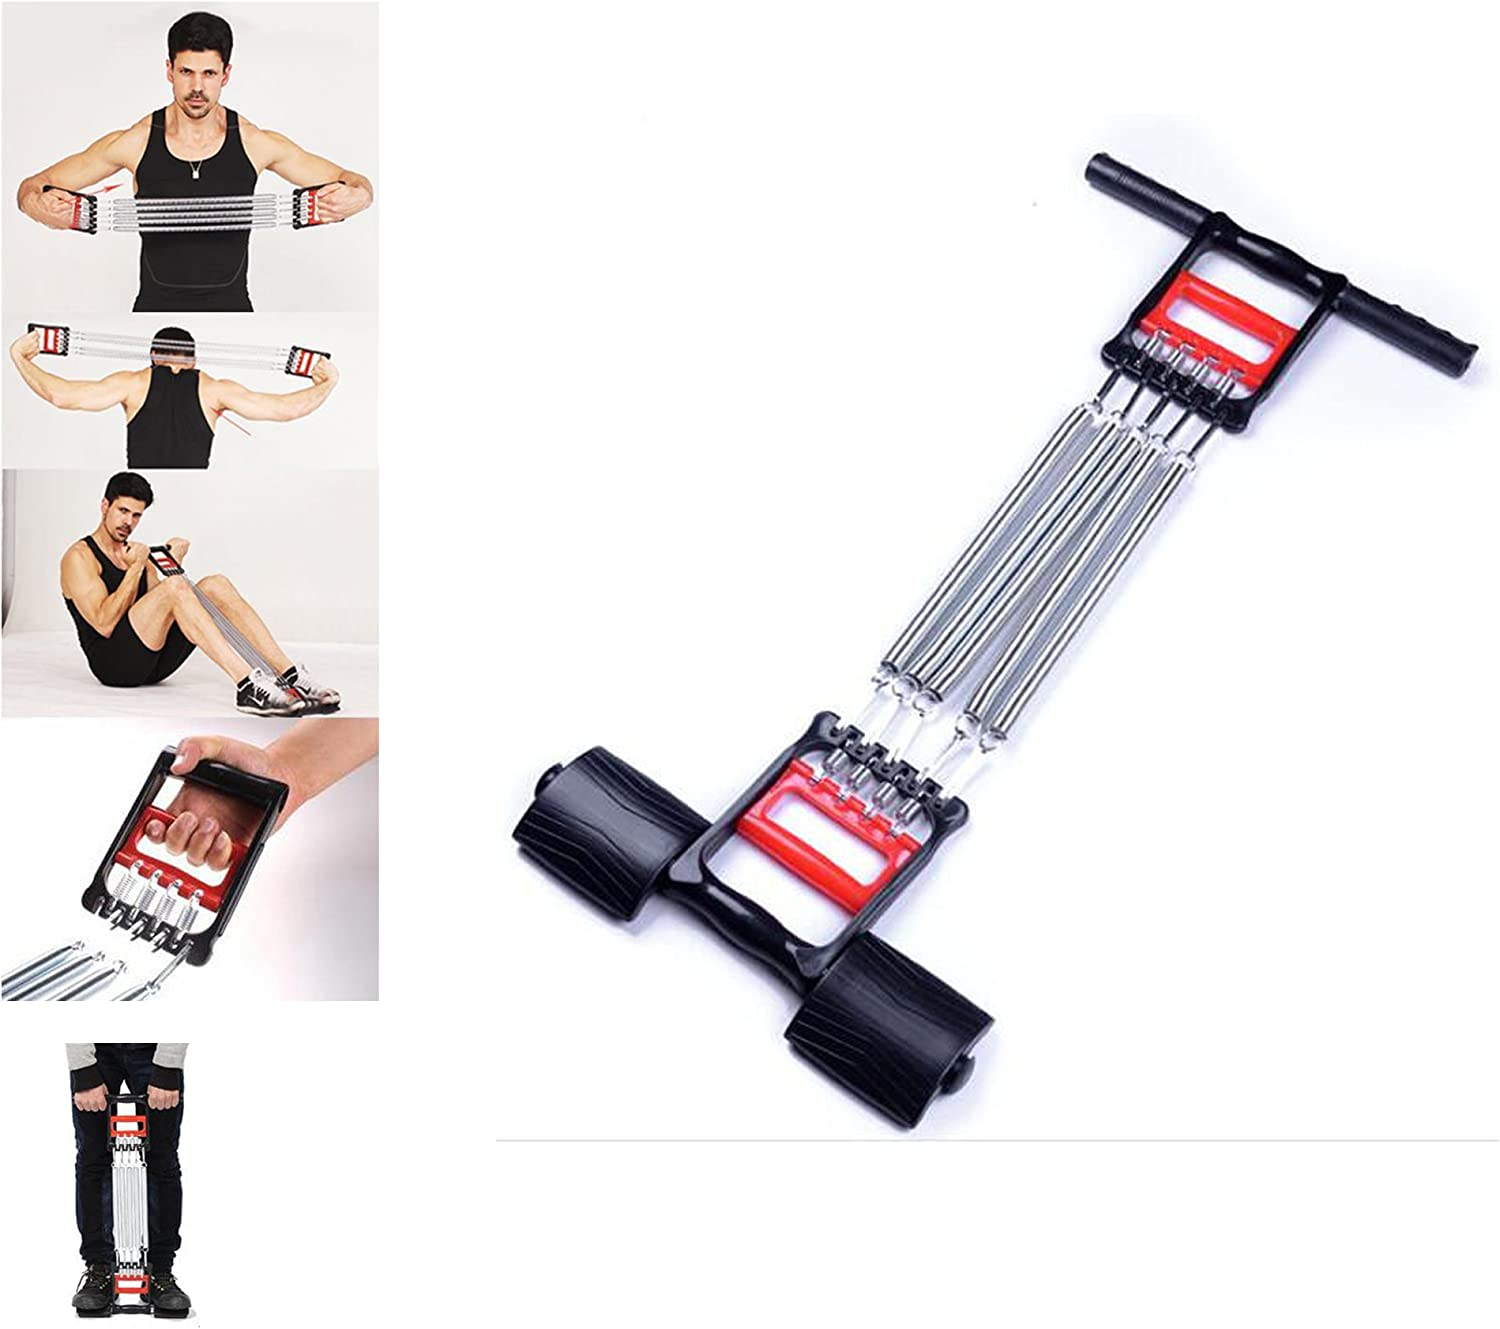 Amazon.com : Tonyko 3 in 1 Home Fitness Equipment Spring Exerciser Chest  Expander Pull-up Bars : Sports & Outdoors